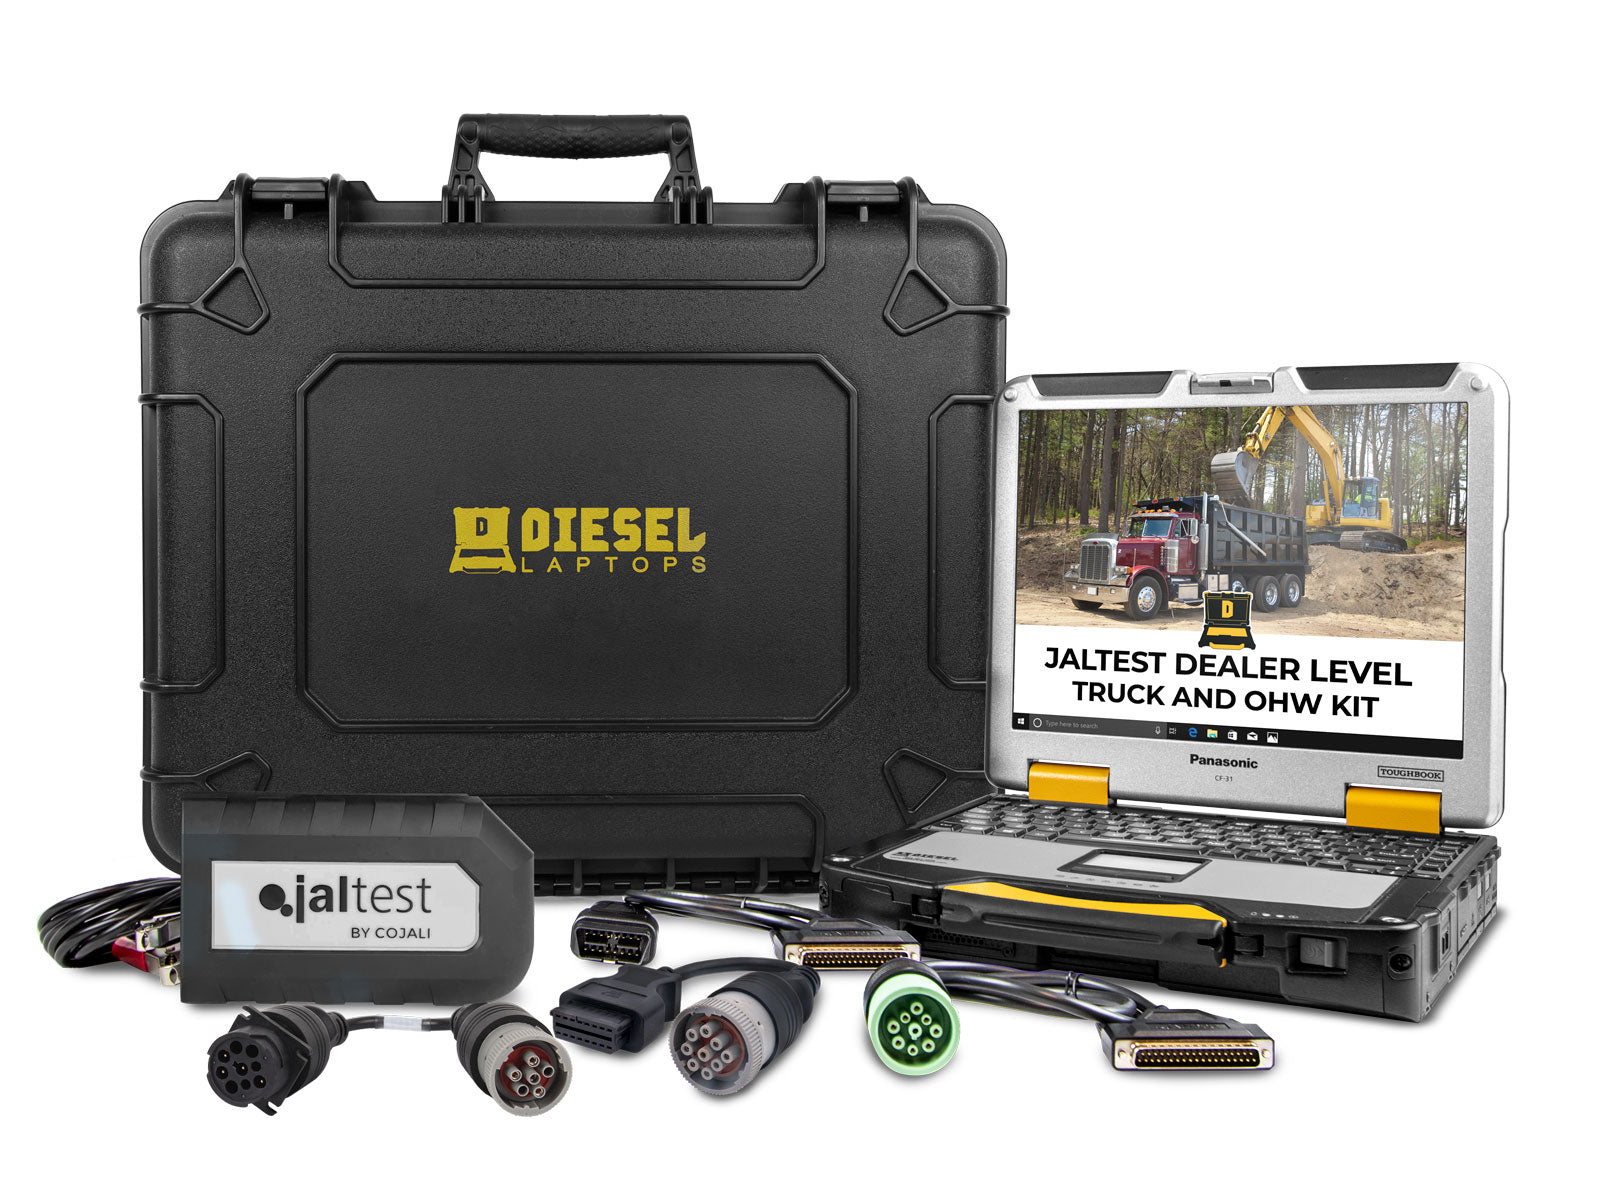 Cojali Jaltest Truck and Off Highway Diagnostic Tool